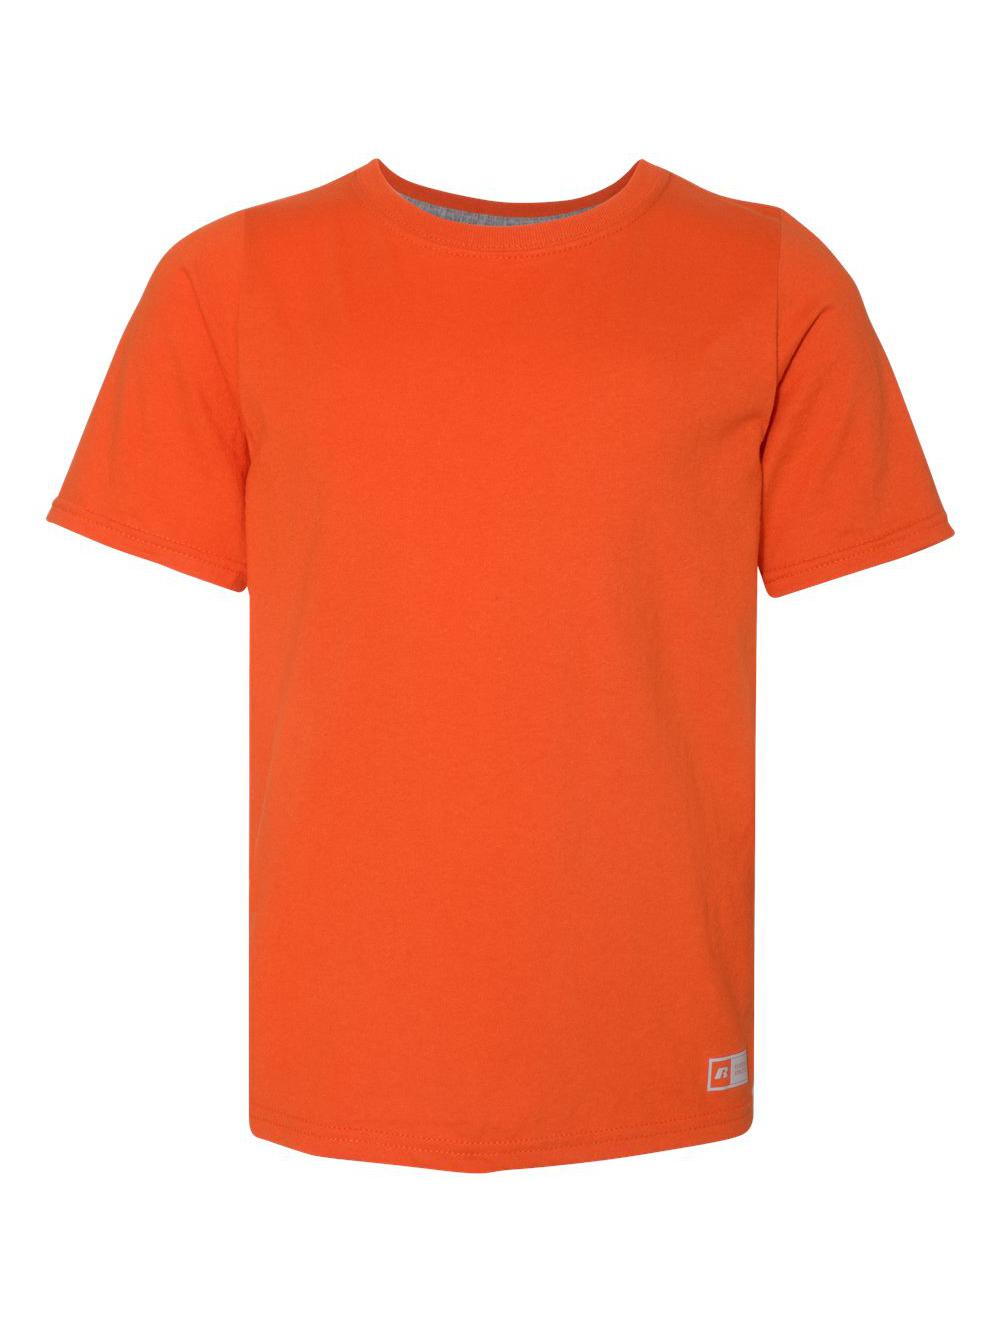 f11769ec Russell Athletic Big Boys' Essential Short Sleeve Tee Burnt Orange XL.  About this product. Picture 1 of 4; Picture 2 of 4; Picture 3 of 4 ...